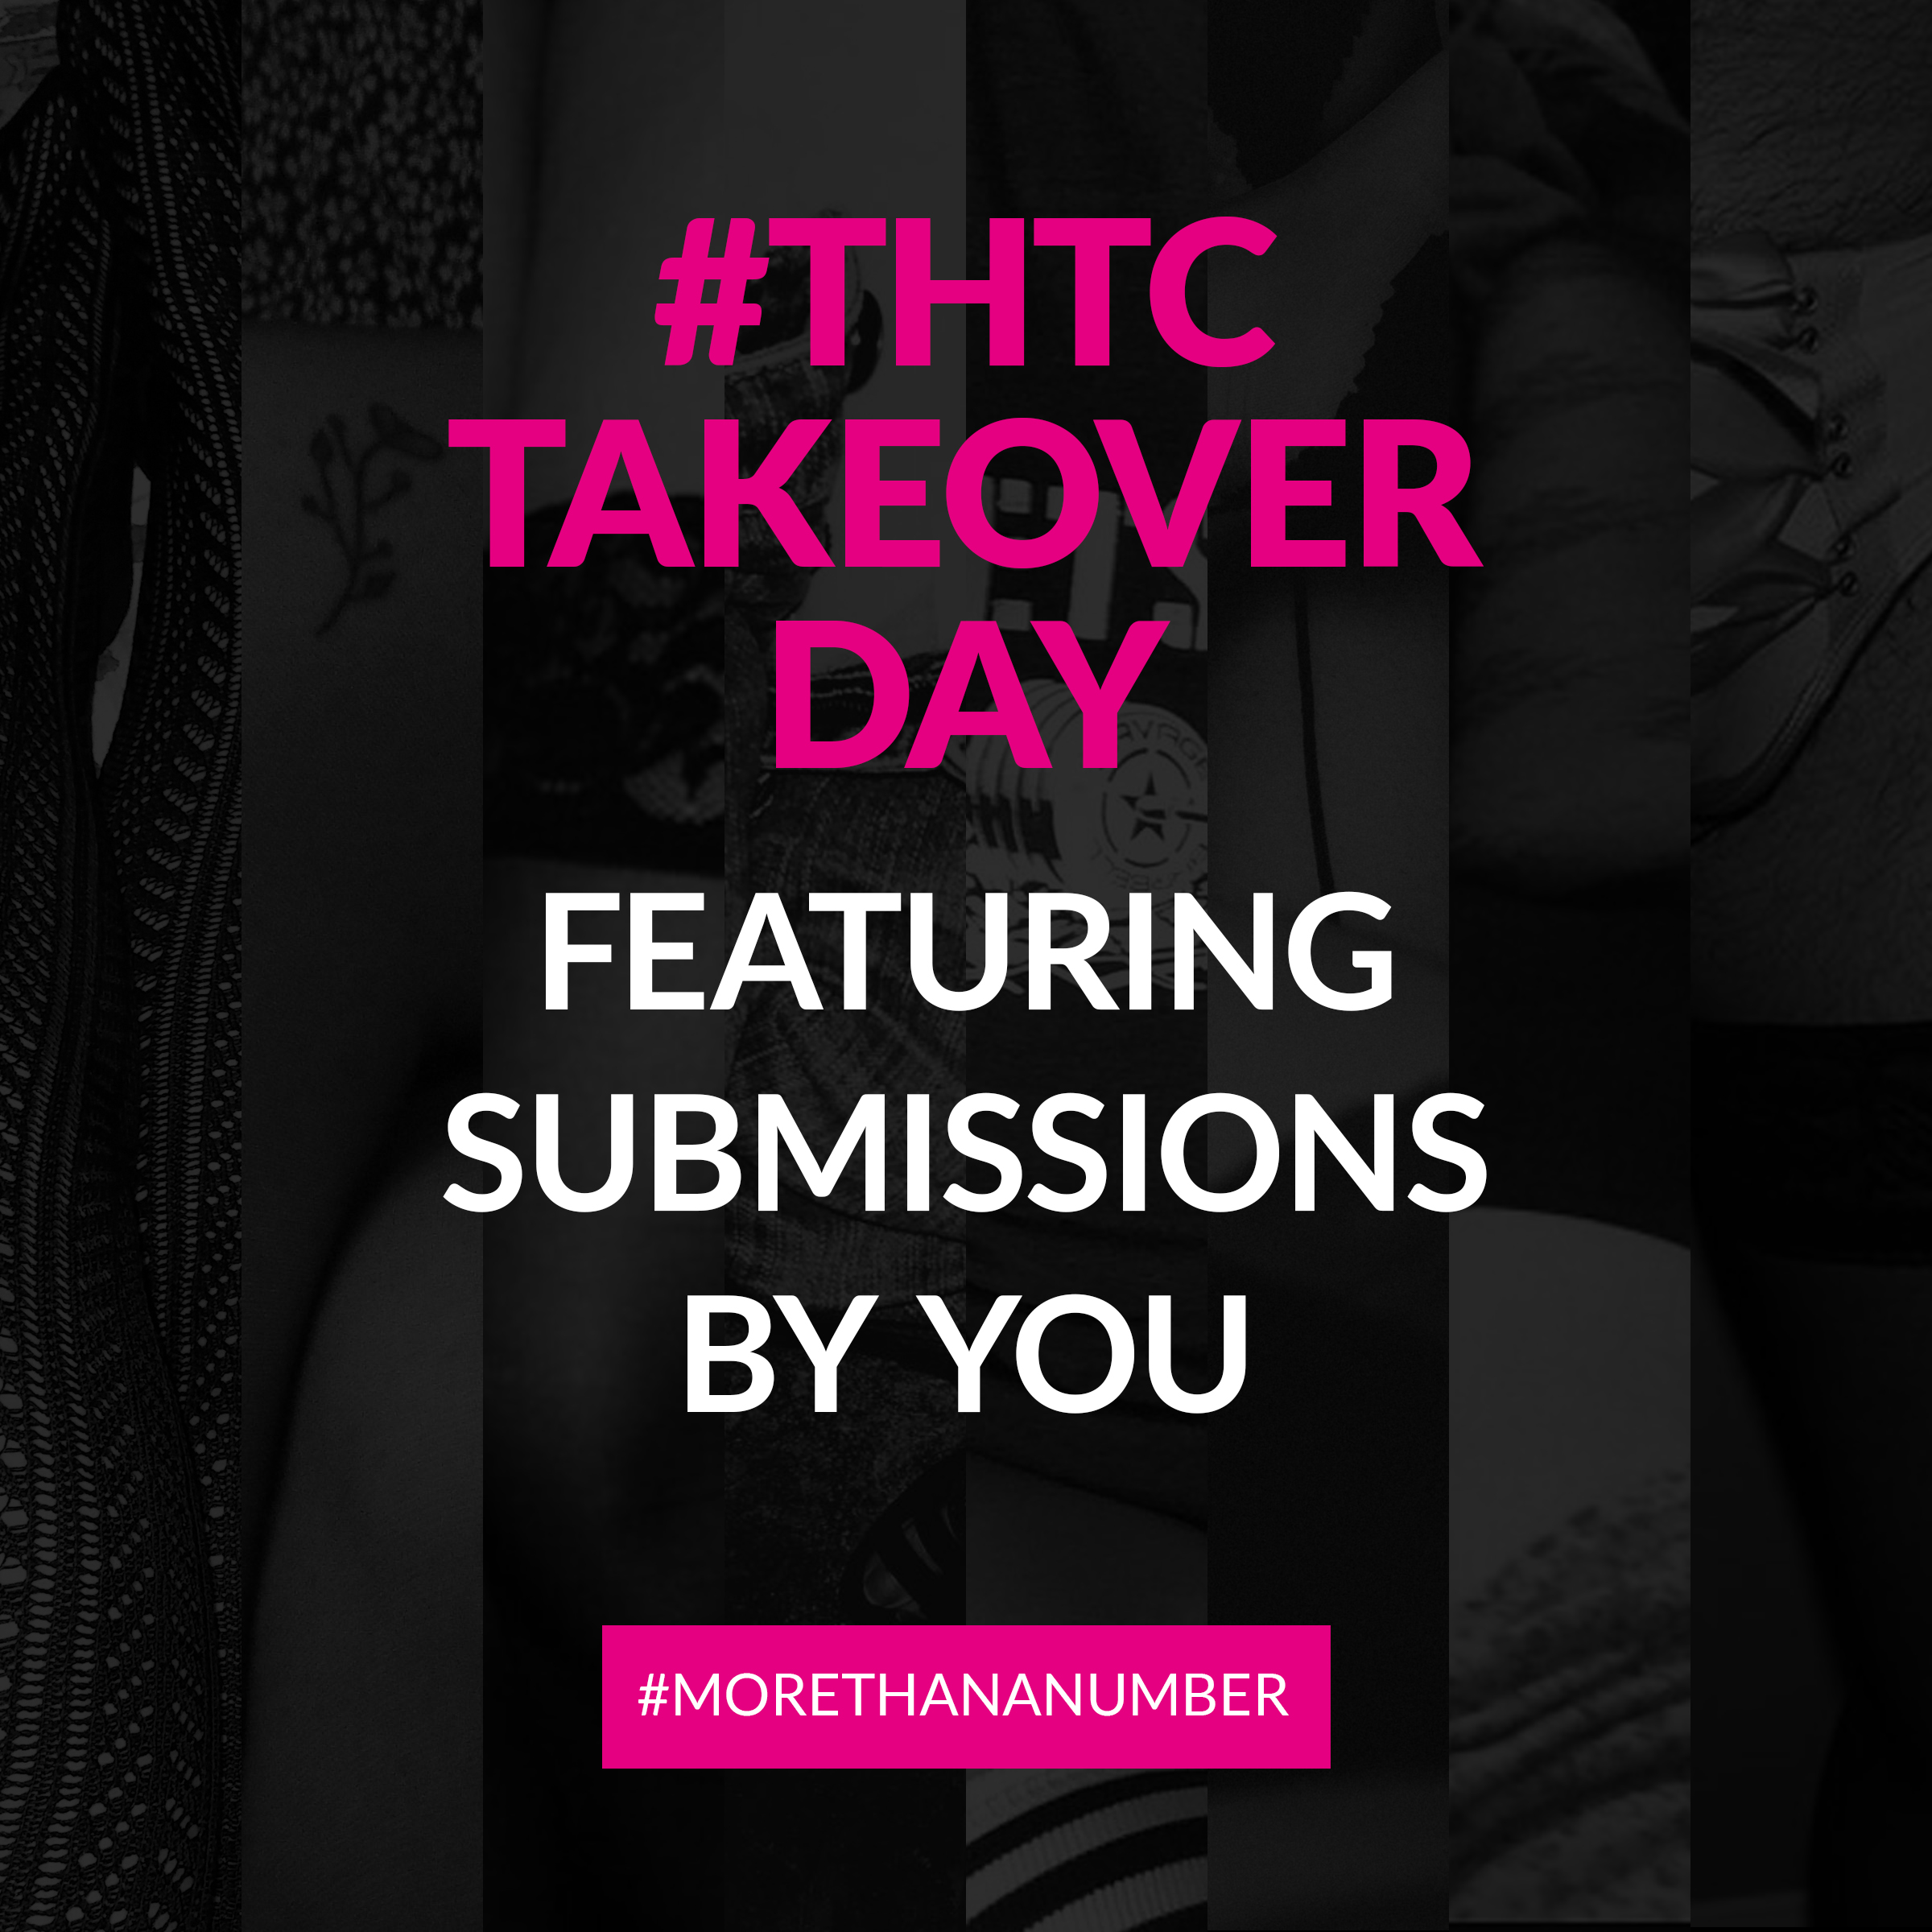 For Women's History Month, the Femme Project has been exploring body image and celebrating the beauty of all women. Today, Thigh High Thursday is all about YOU - the women (and men) who embrace their originality, their sexy, their curves, their kink, their nonconformity and their femininity...and of course, their thigh highs.